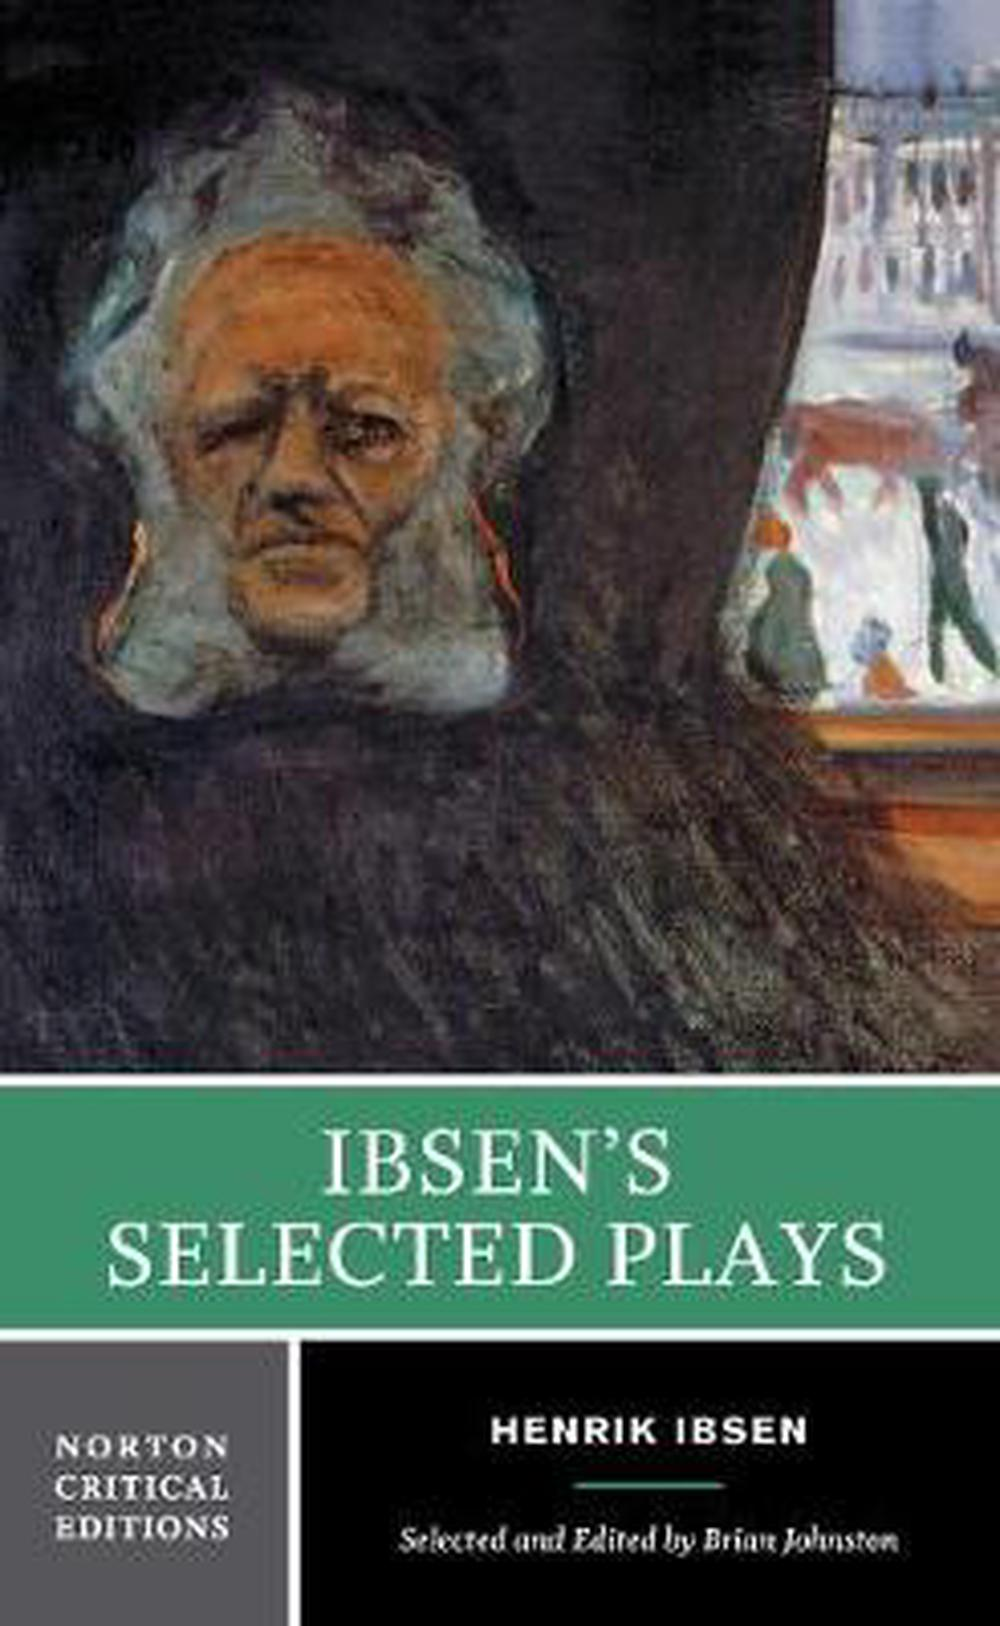 the early life and literary works of henrik johan ibsen Early life henrik ibsen was born on march 20, 1828, in skien, norway his father was a successful merchant  ibsen, henrik johan (1828–1906) norwegian playwright and poet his first play was catilina (1850),  works in literary context ibsen's first and most obvious impact was social and political his efforts to make drama and the.